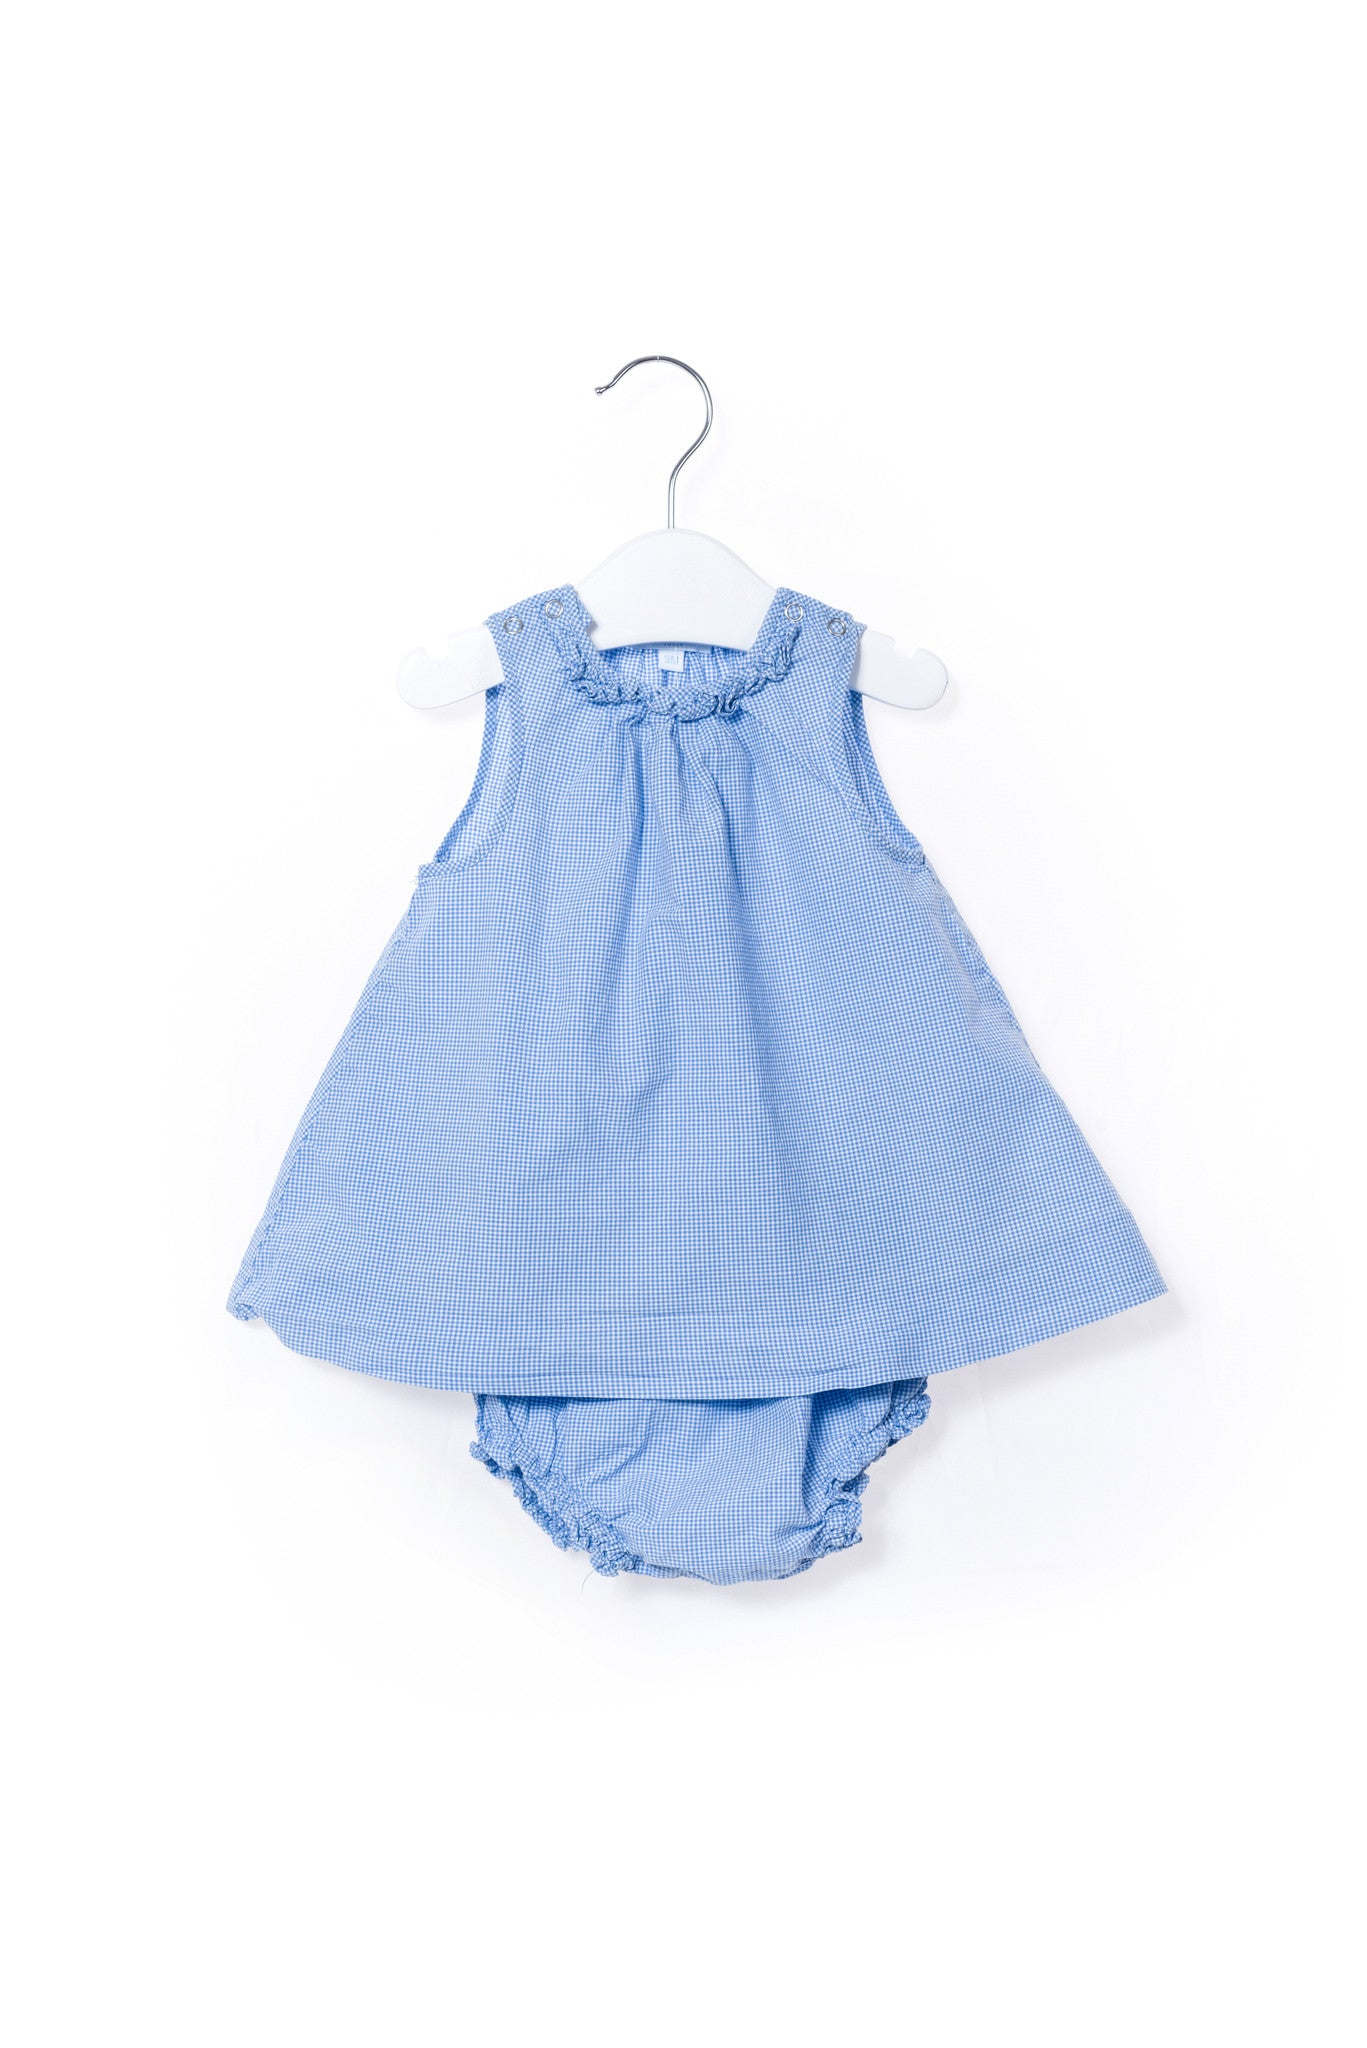 10001219 Jacadi Baby~Dress and Bloomer 0-3M at Retykle